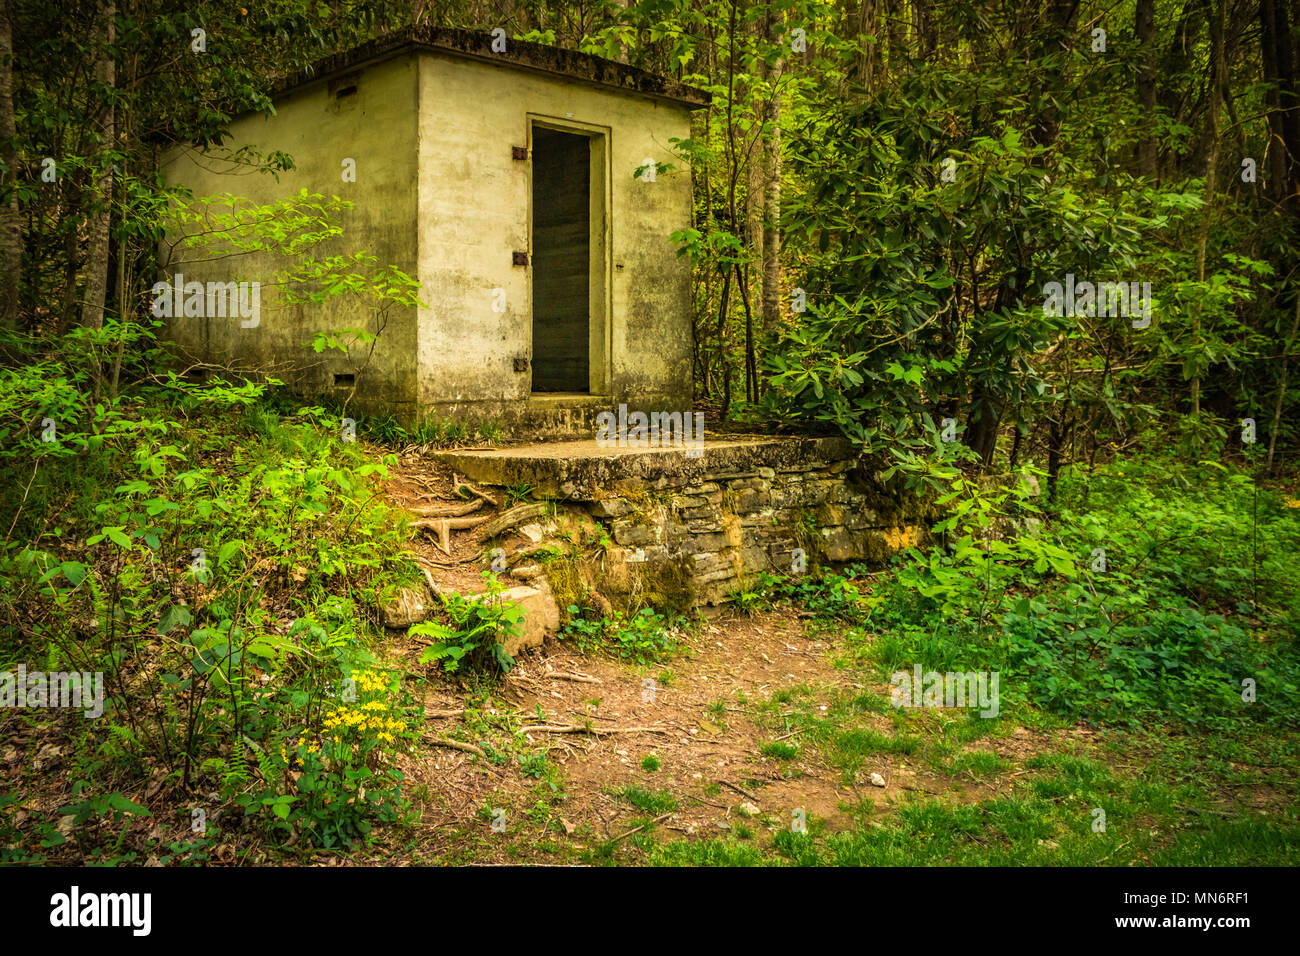 Abandoned Building in the Woods - Stock Image